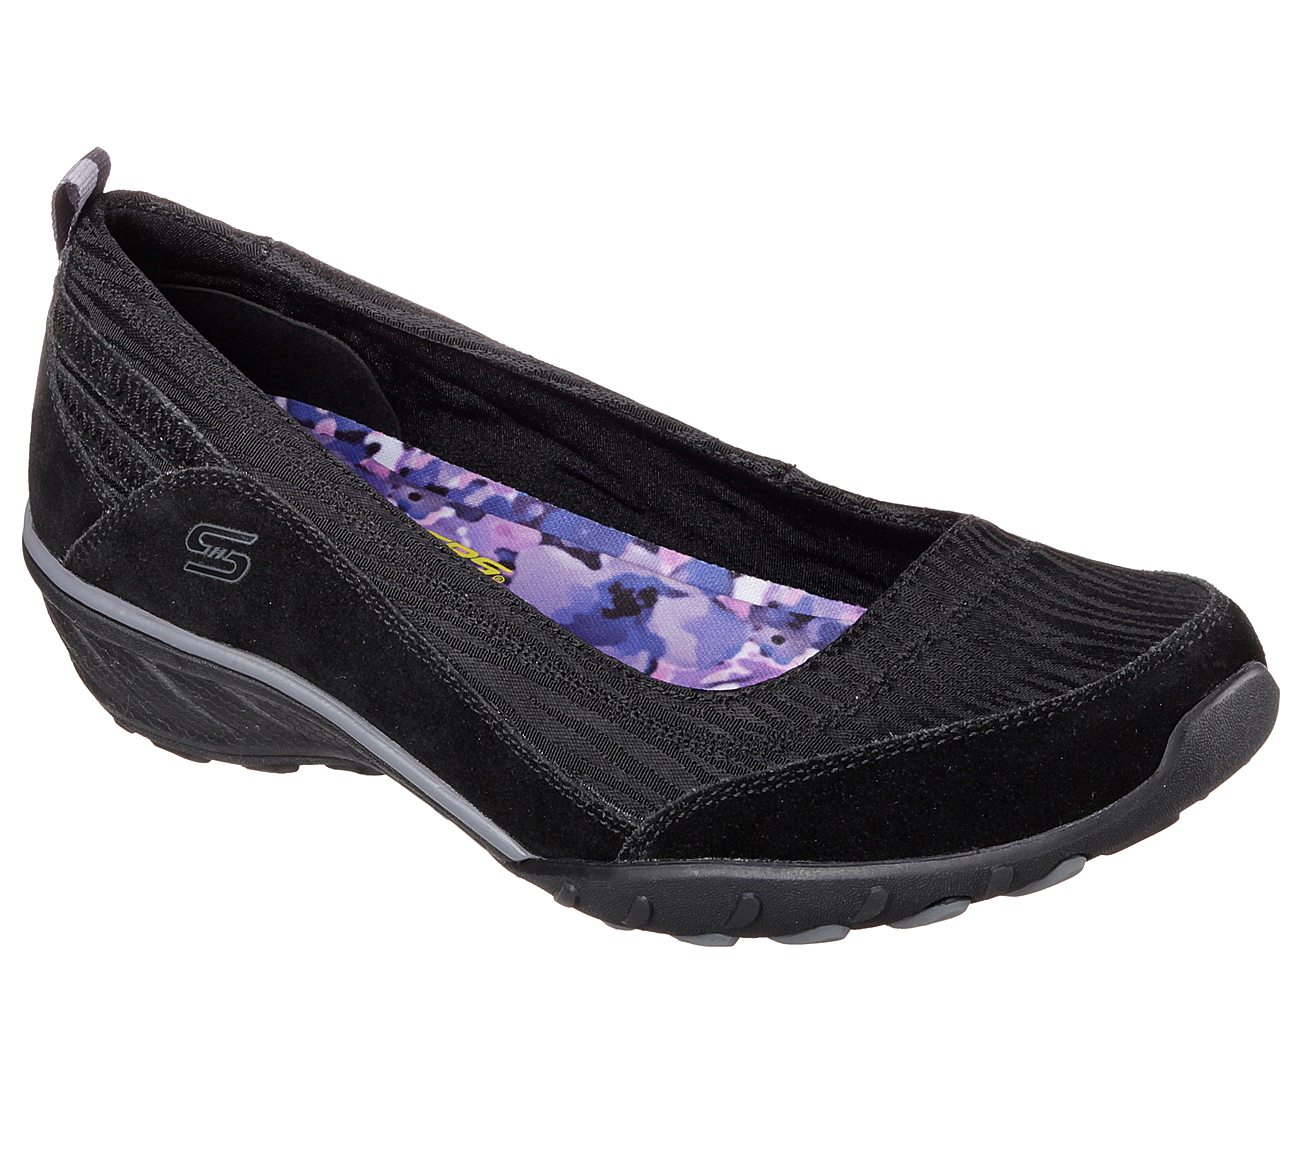 9b0cf8db3419 Buy SKECHERS Relaxed Fit  Savvy - Dressed Up Active Shoes only  41.00